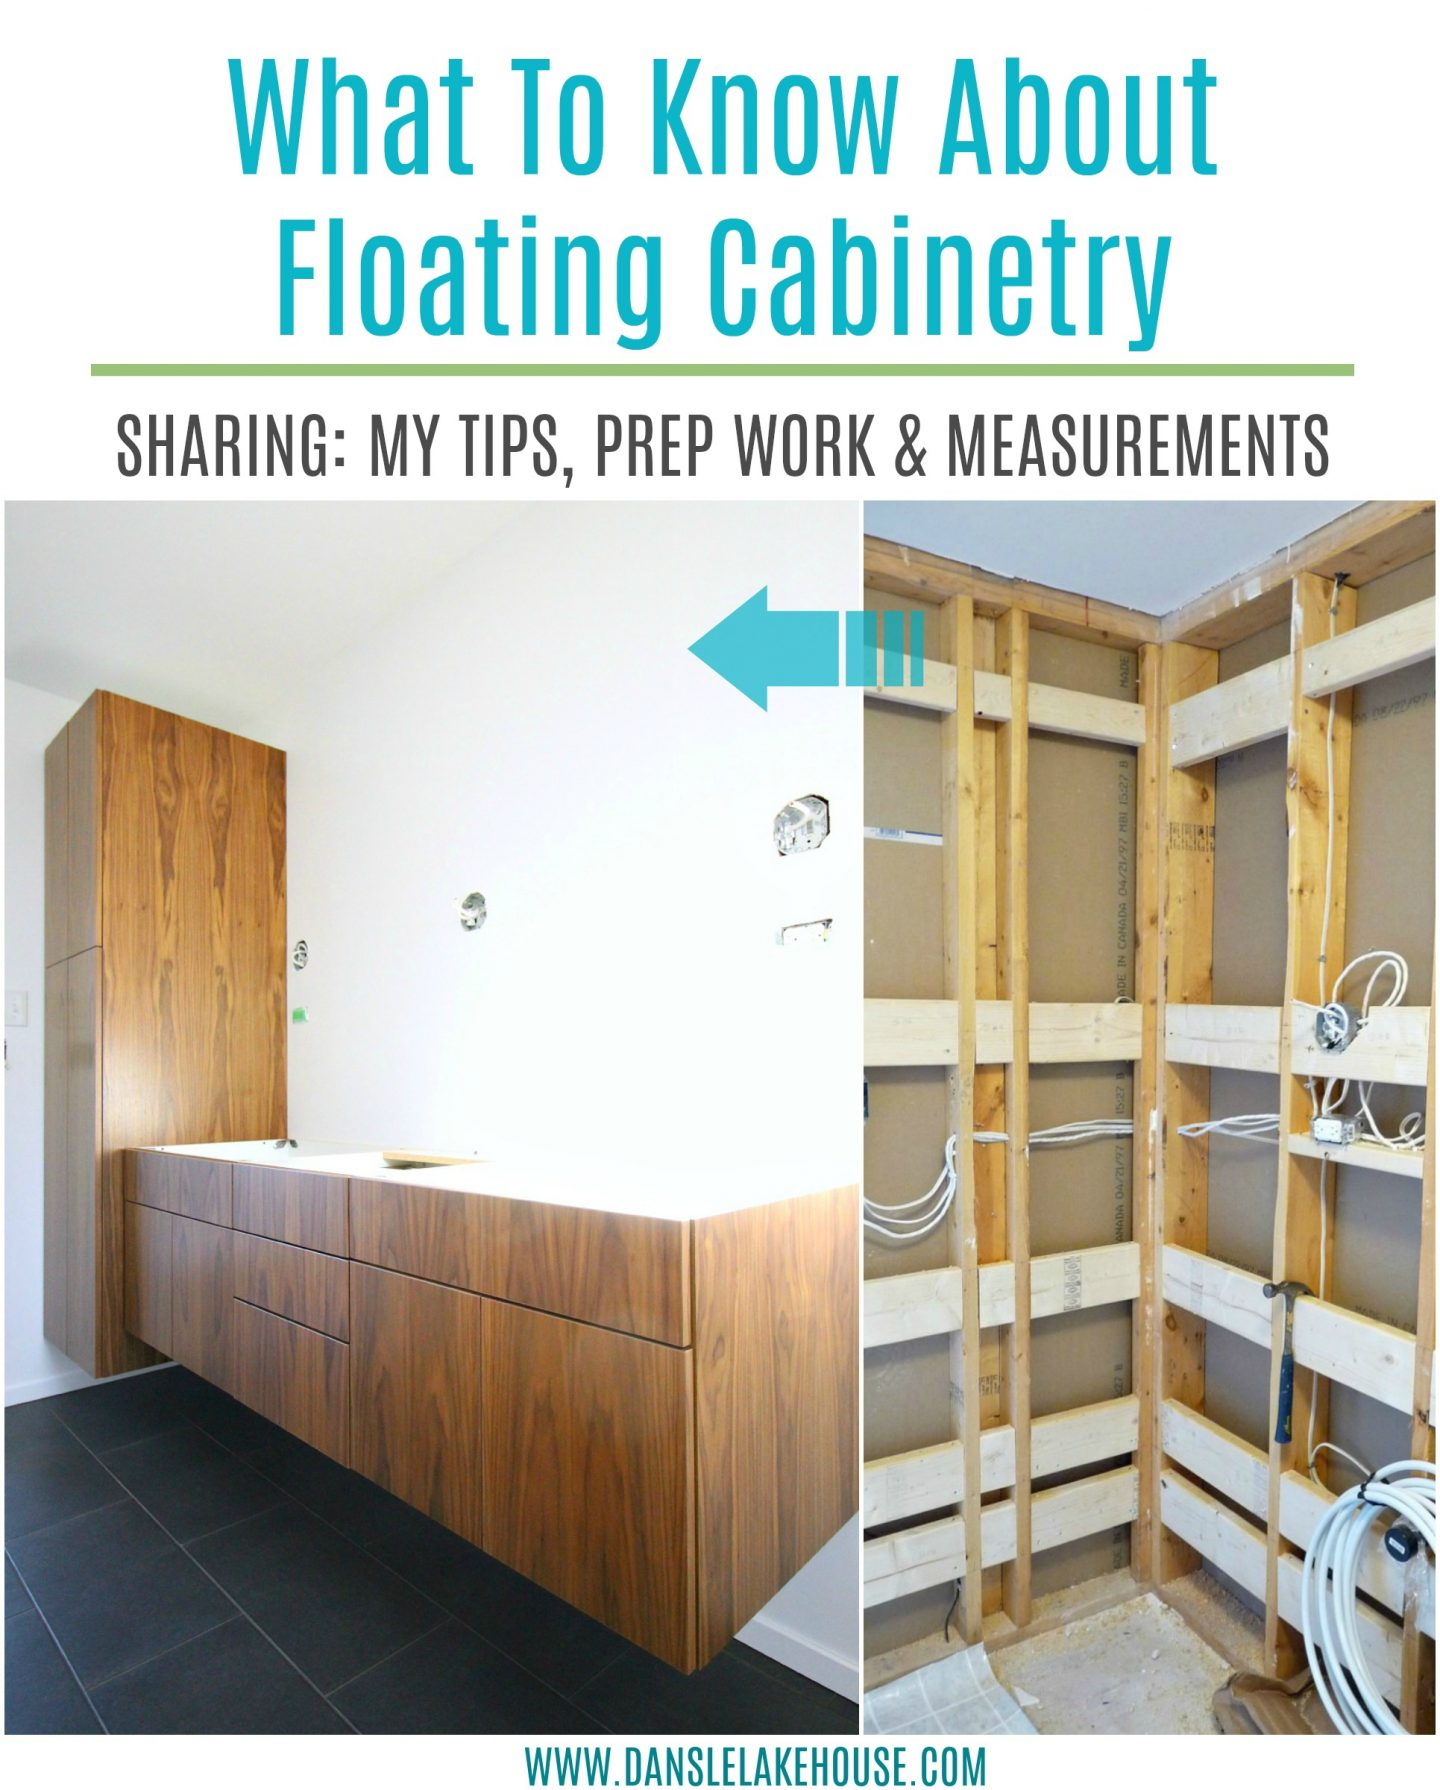 What to Know About Floating Wall Mounted Cabinetry: Tips, Tricks and Prep Required. Read about my floating cabinets in the bathroom. #renovating #floatingcabinets #cabinetry #howto